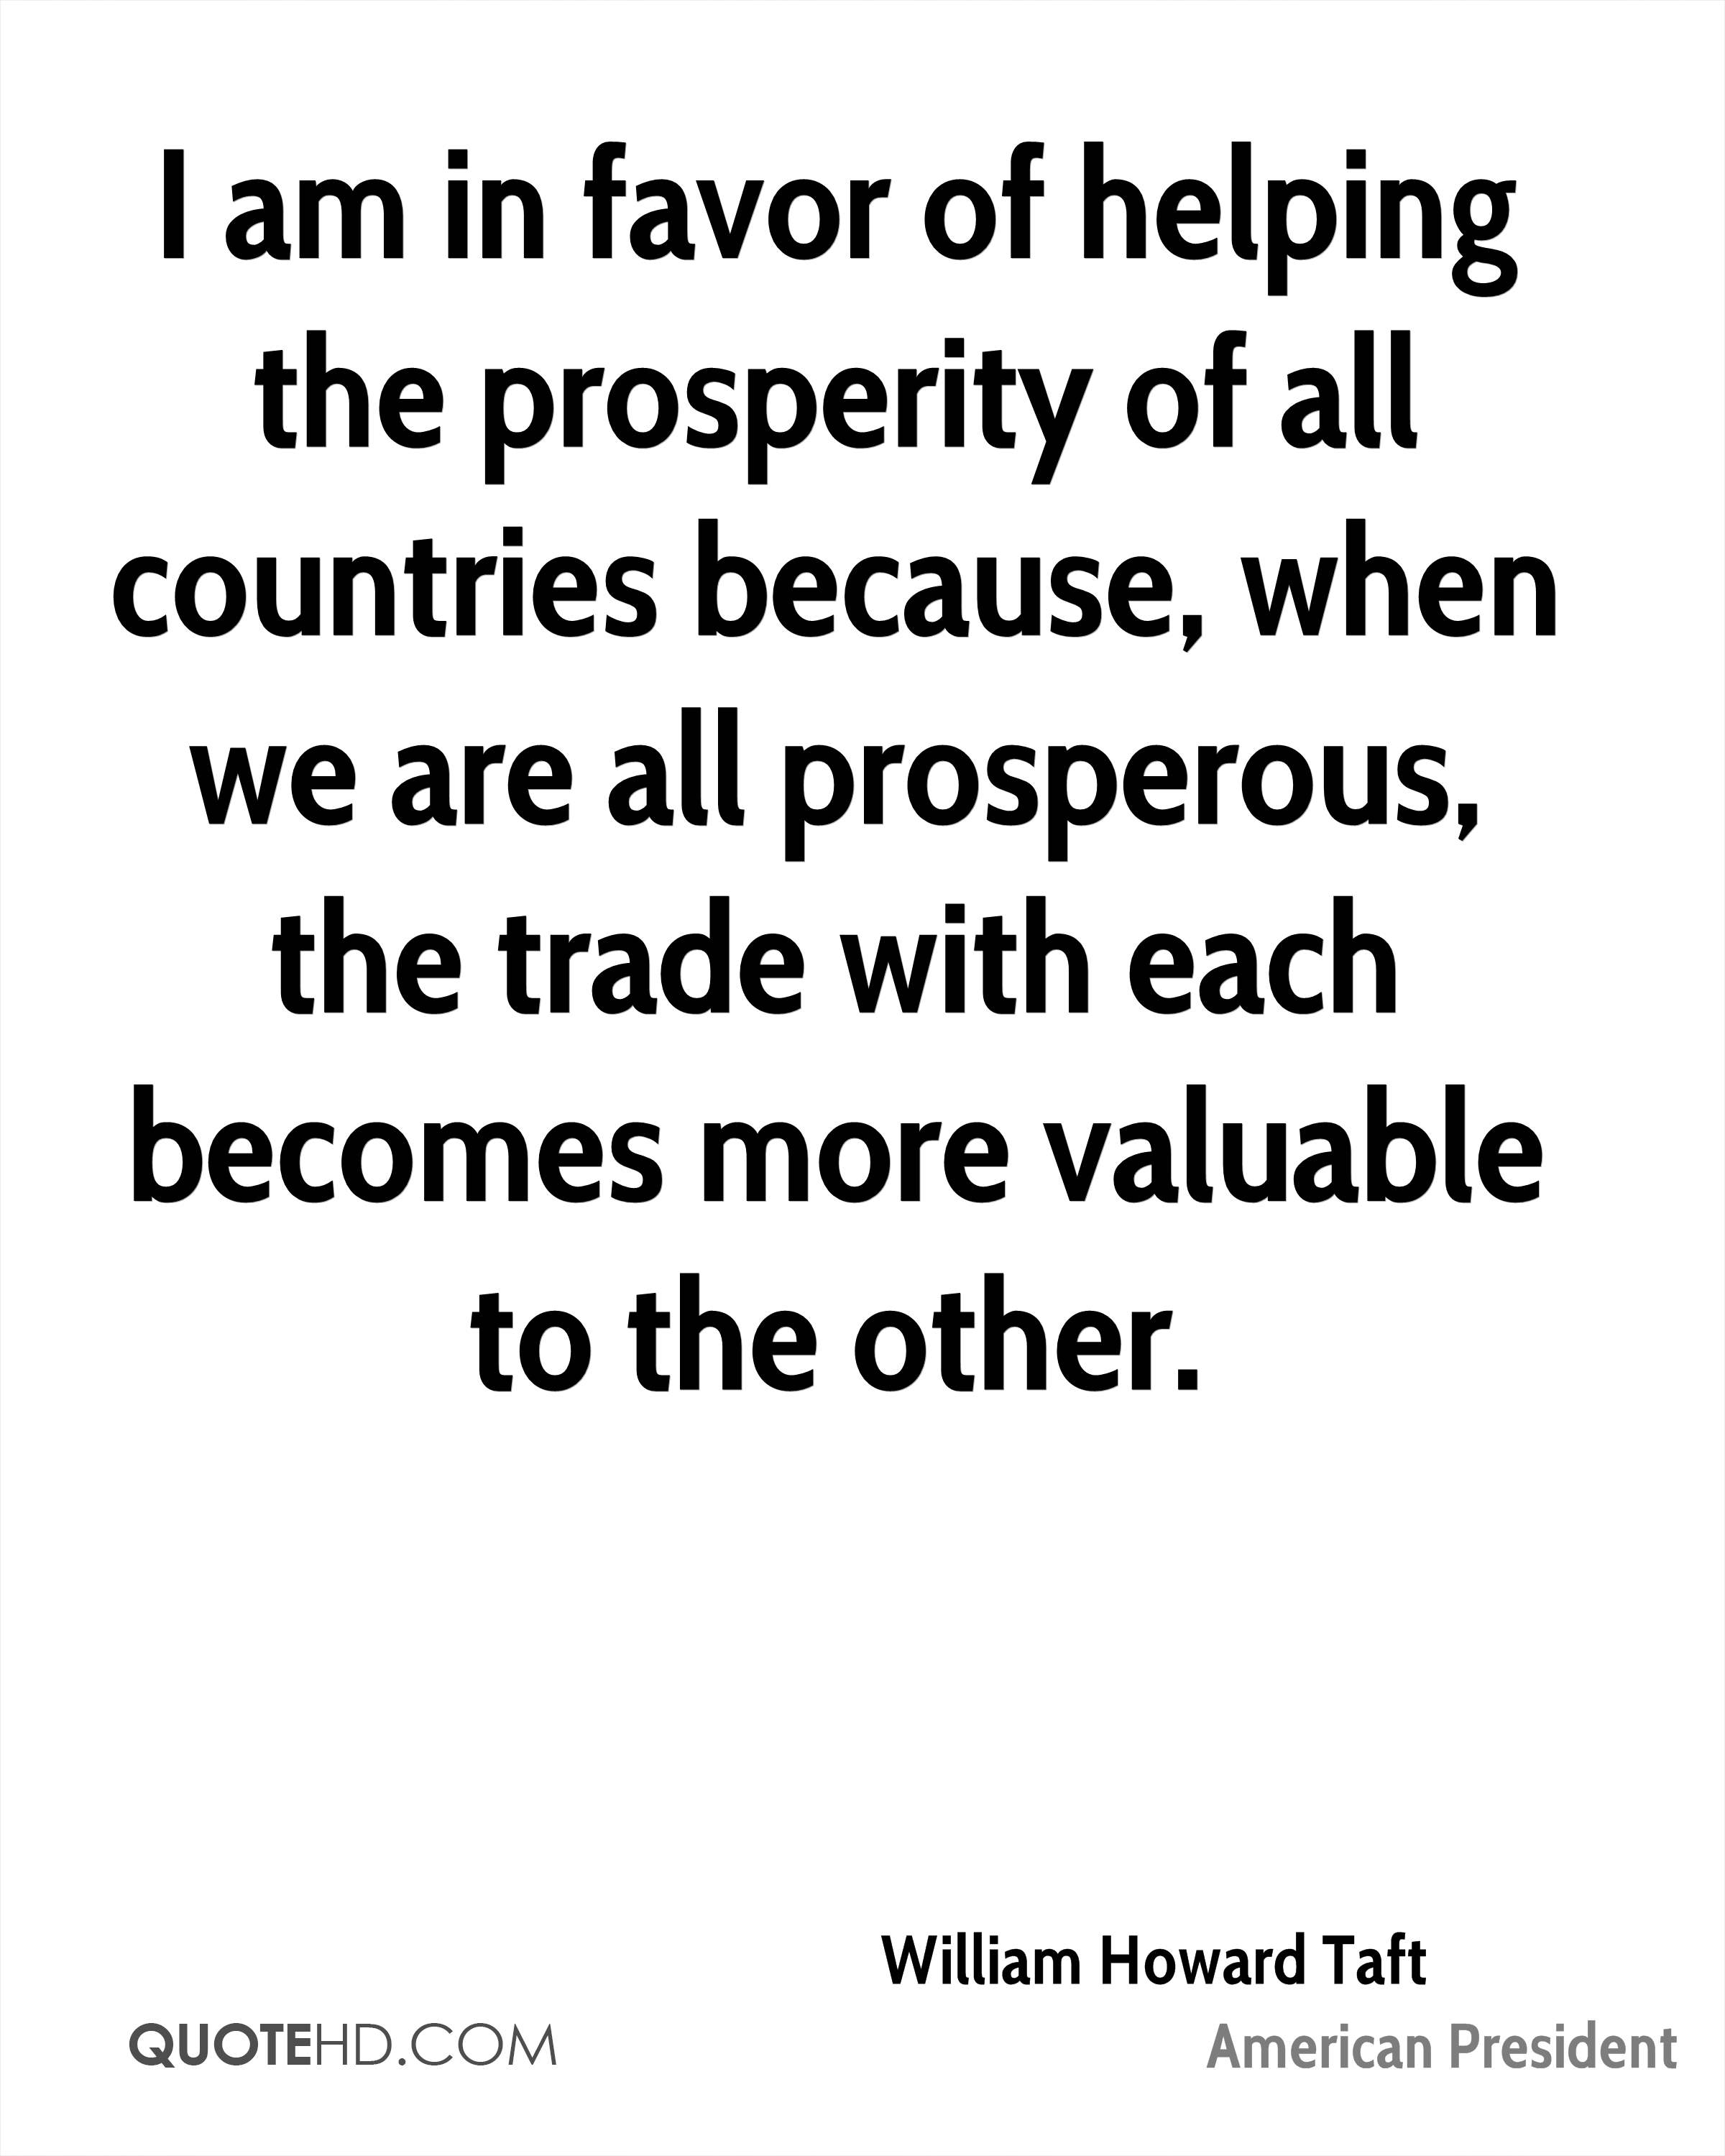 I am in favor of helping the prosperity of all countries because, when we are all prosperous, the trade with each becomes more valuable to the other.